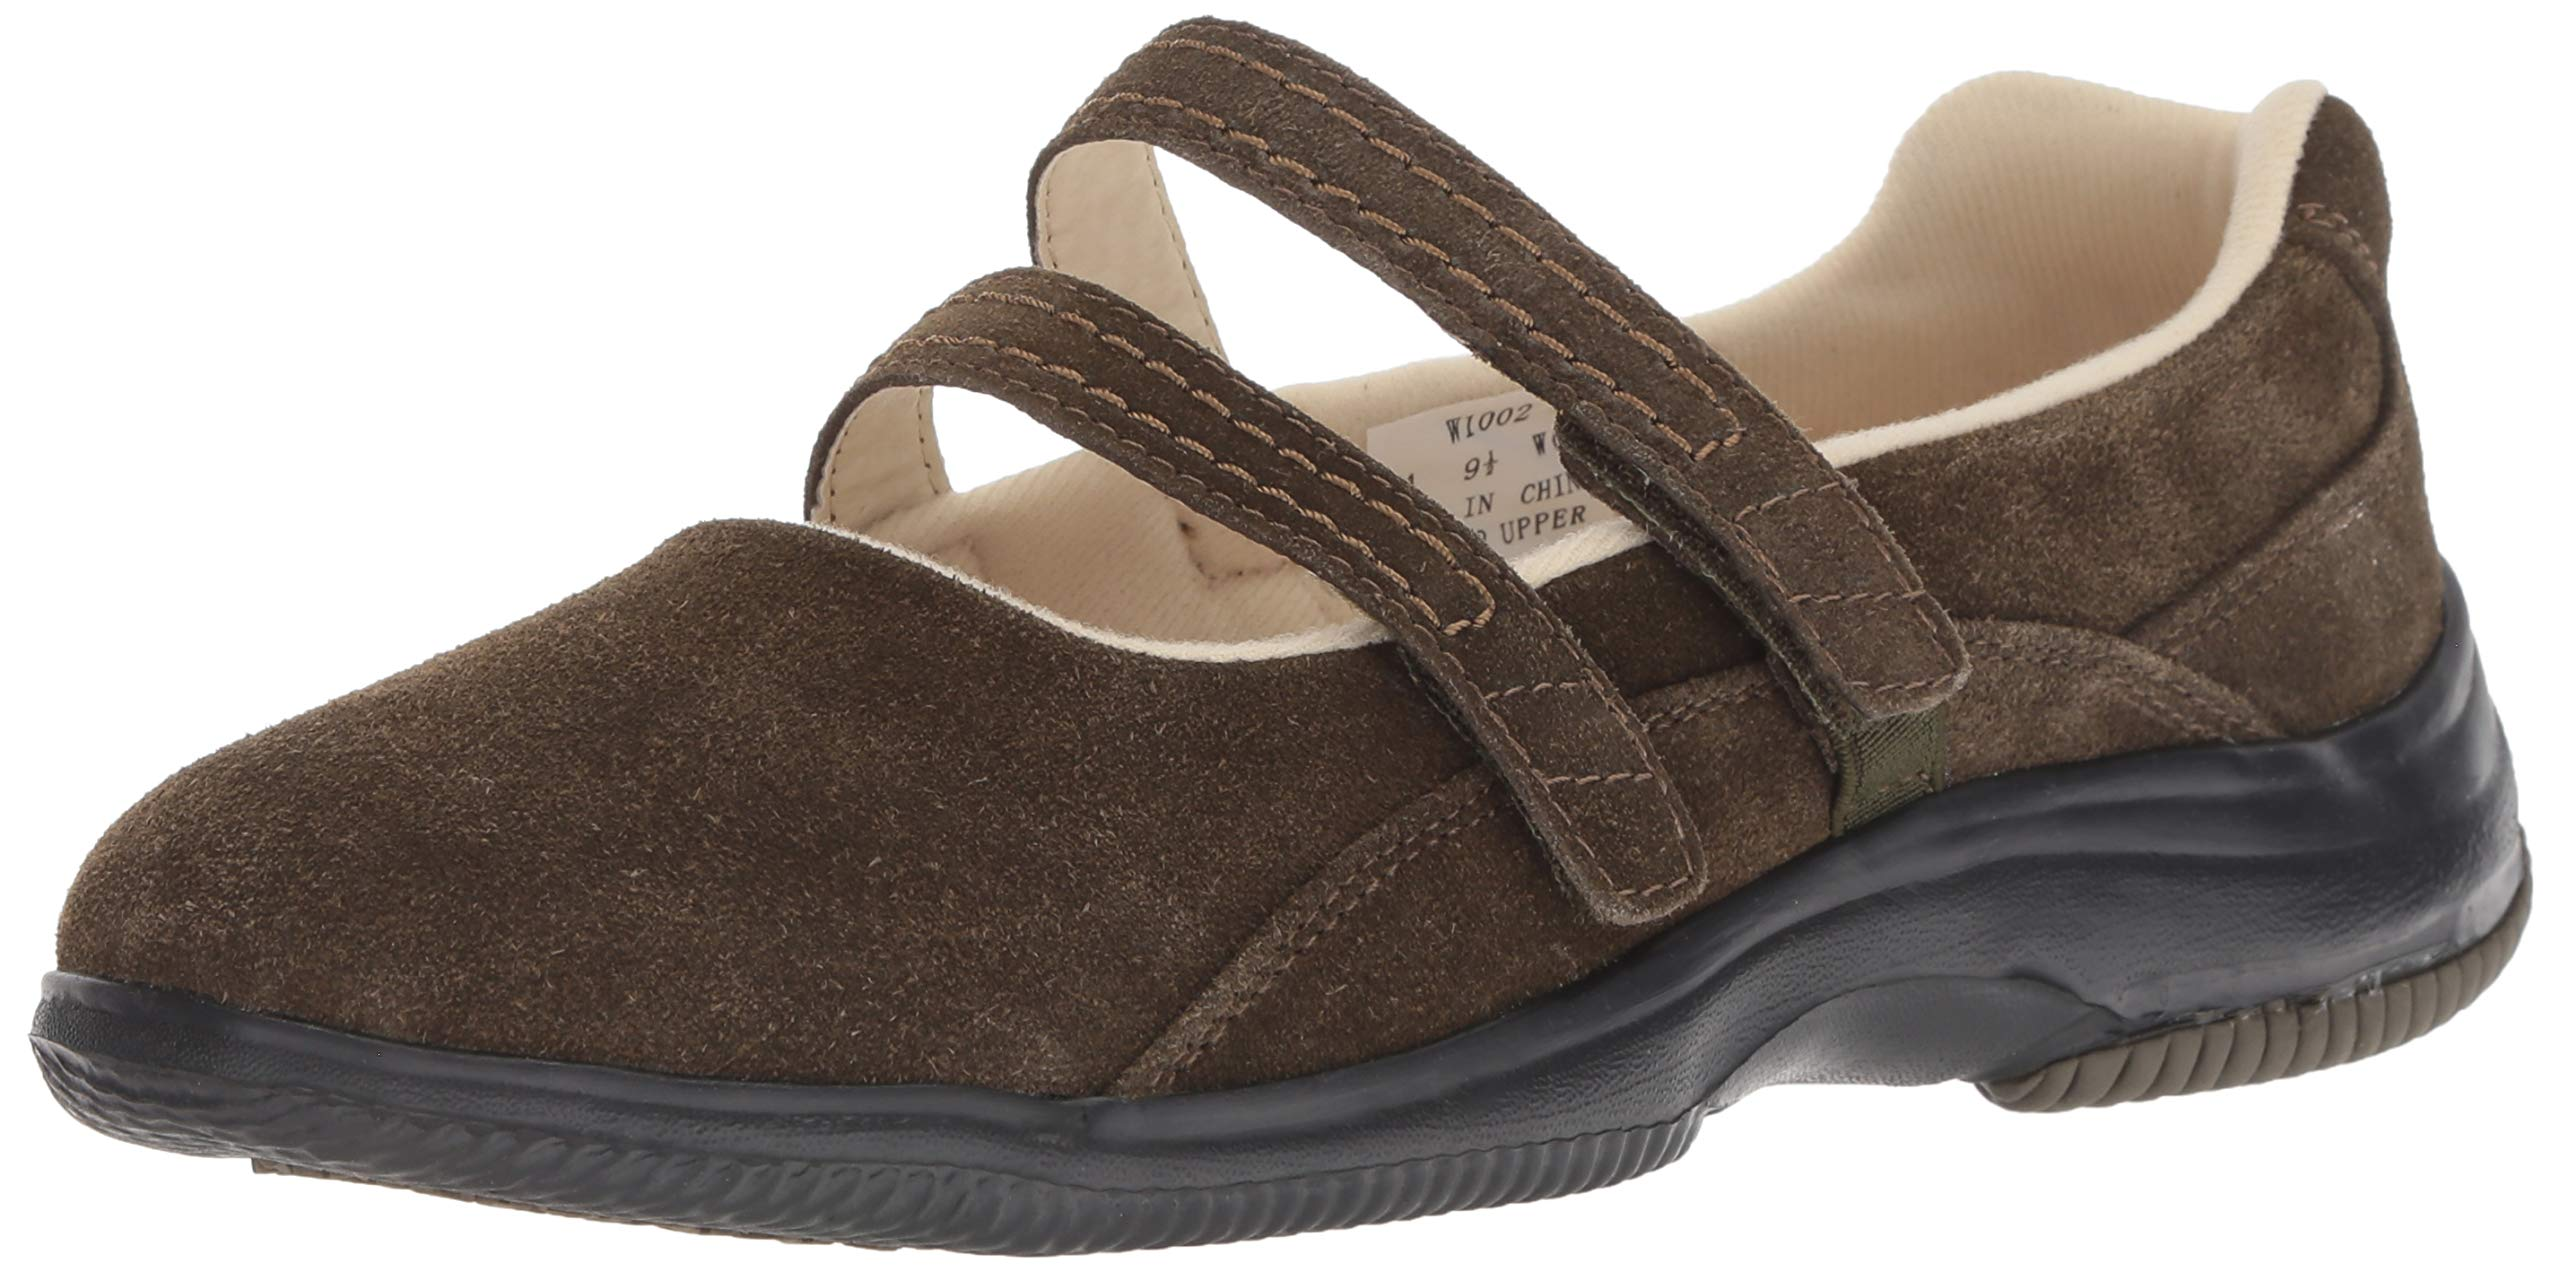 Propet Women's Twilight Mary Jane Flat, Olive Suede, 9H Medium US by Propét